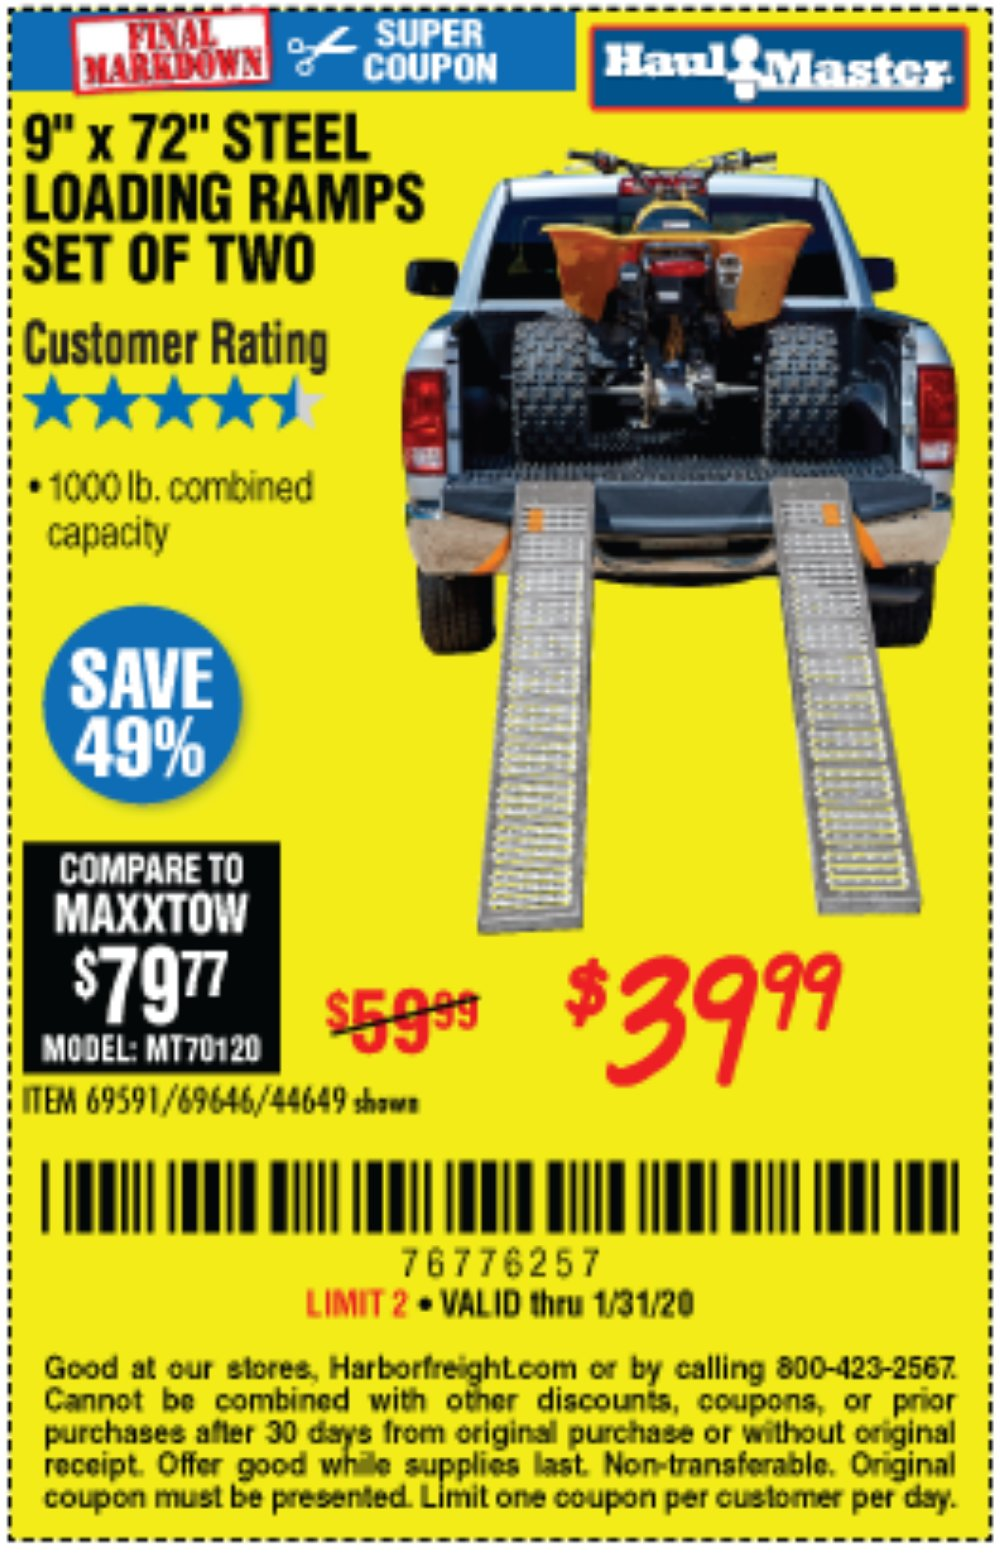 Harbor Freight Coupon, HF Coupons - 1000 Lb. Steel Loading Ramps, Set Of Two